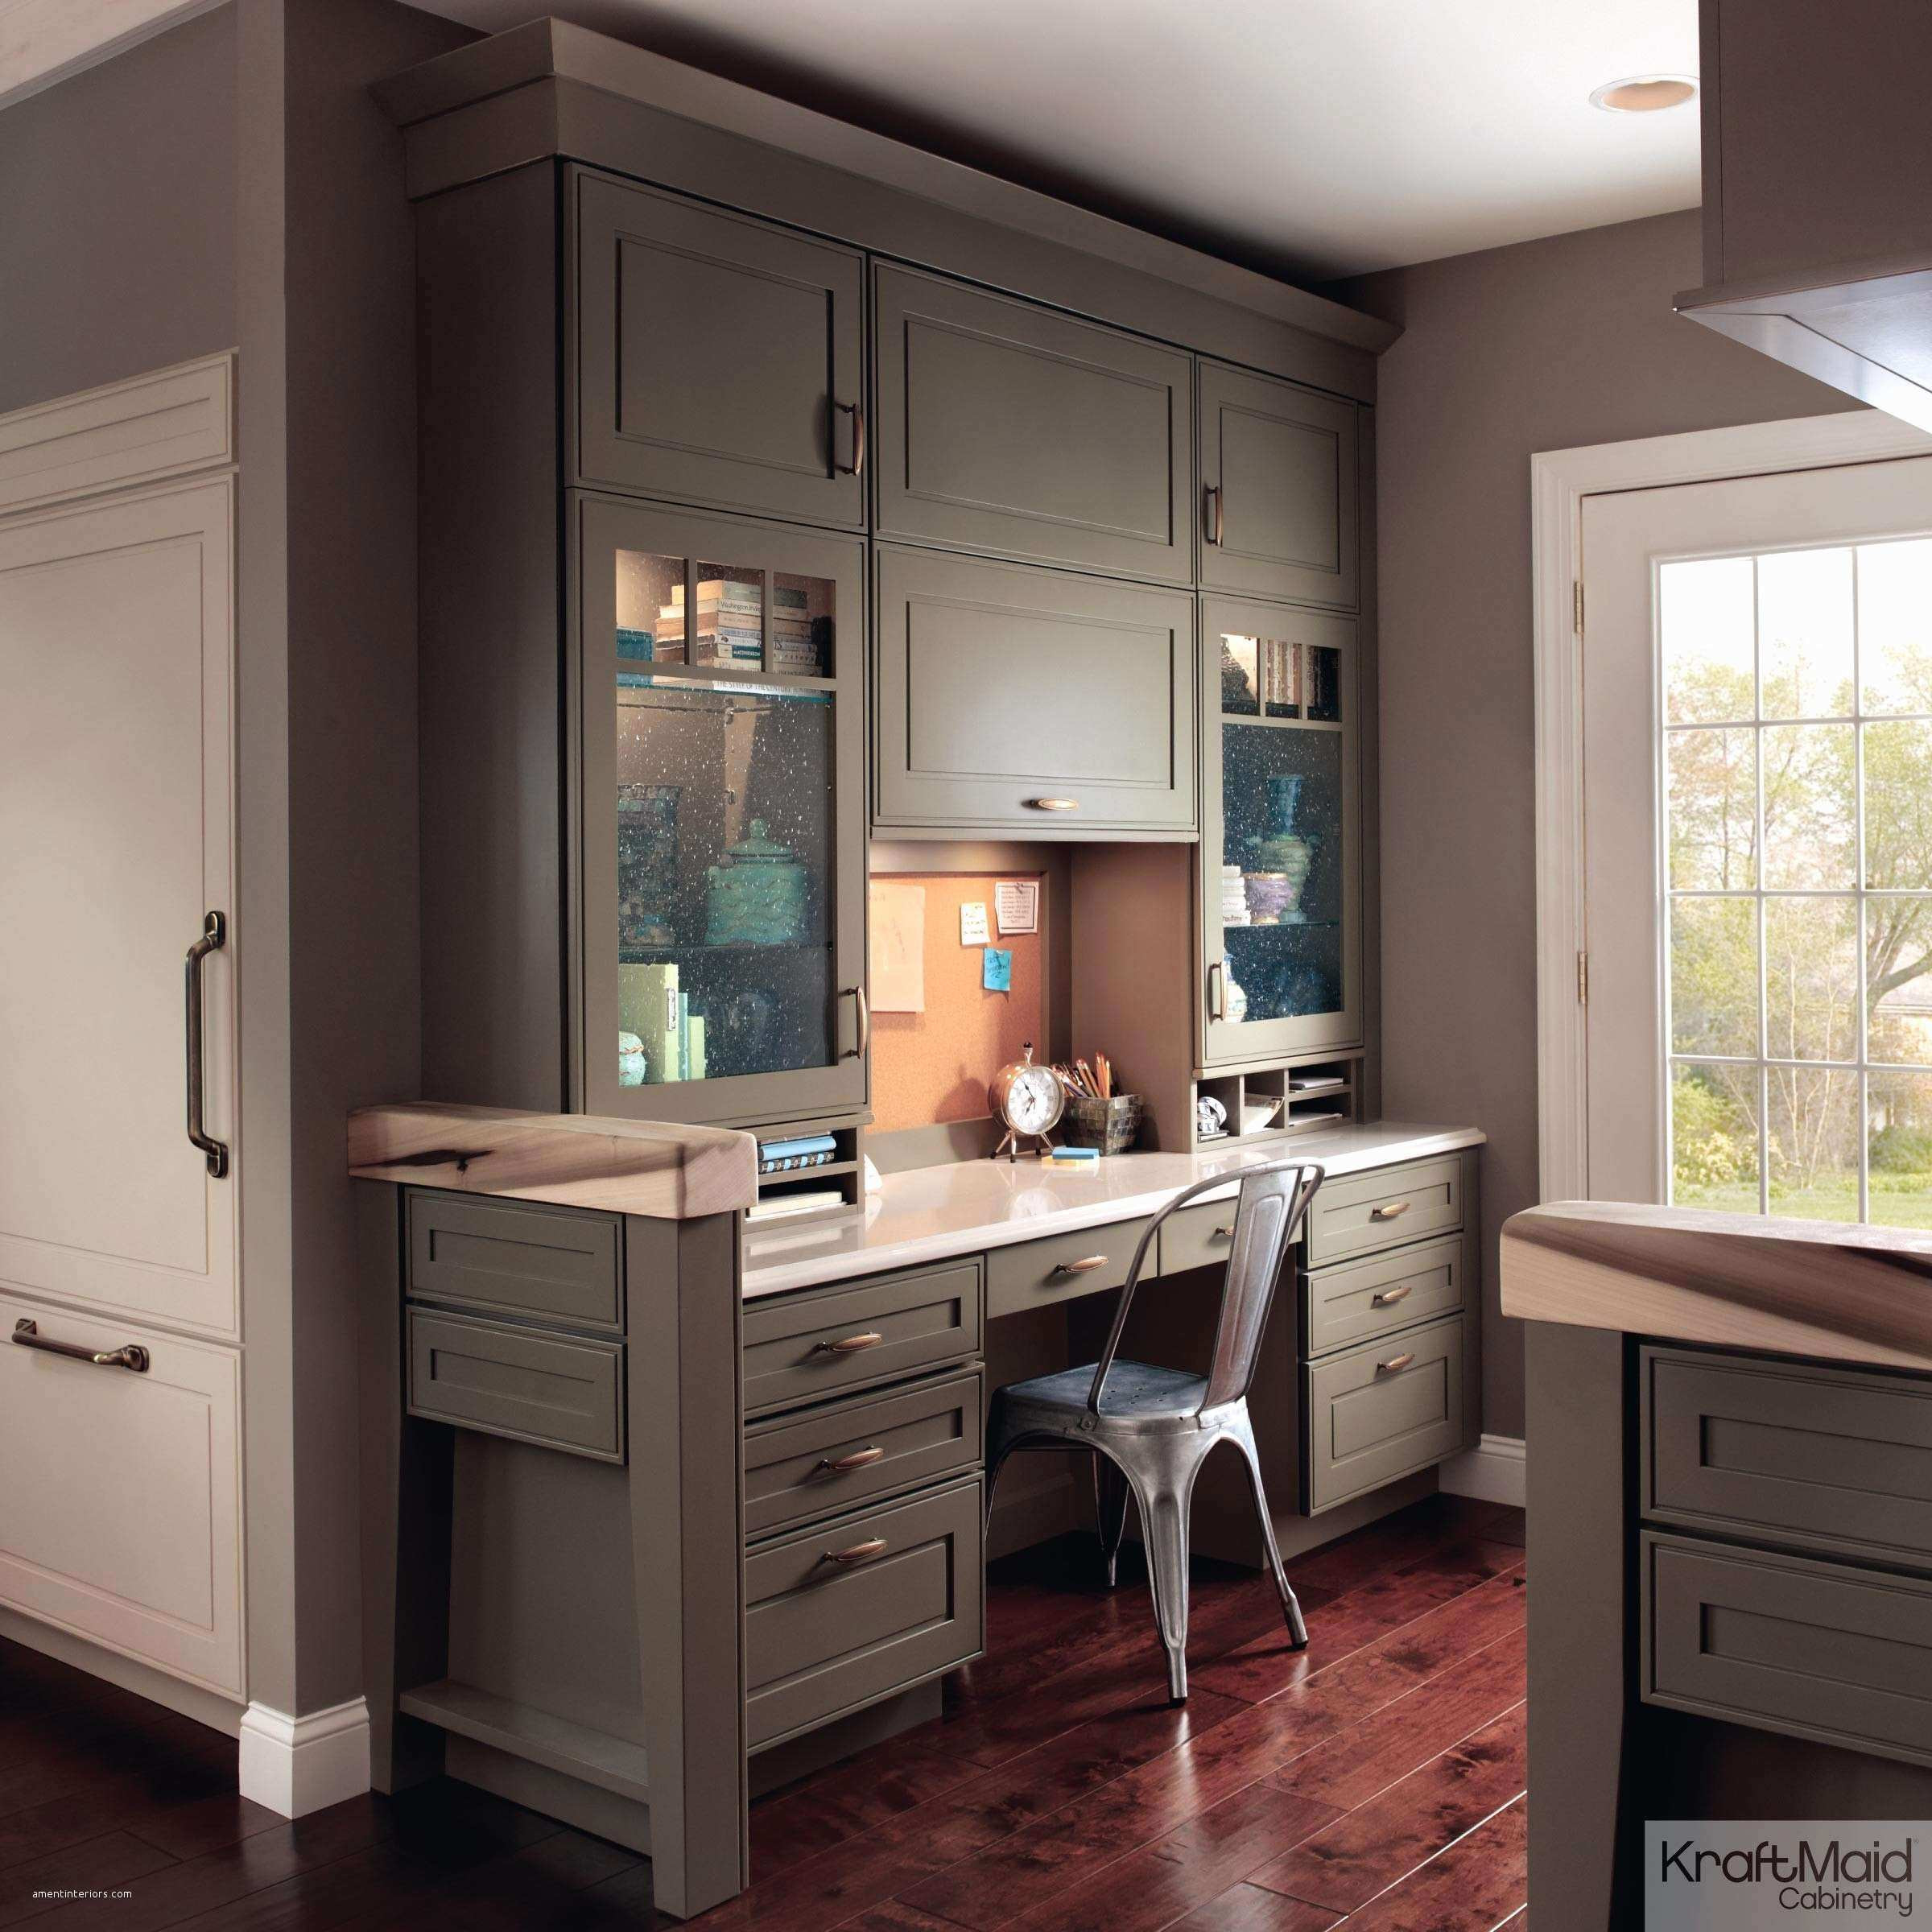 kentucky hardwood flooring of captivating kitchen cabinet colors styling up your 22 lovely design inside gorgeous kitchen cabinet colors inspired on pickled maple kitchen cabinets awesome kitchen cabinet 0d kitchen